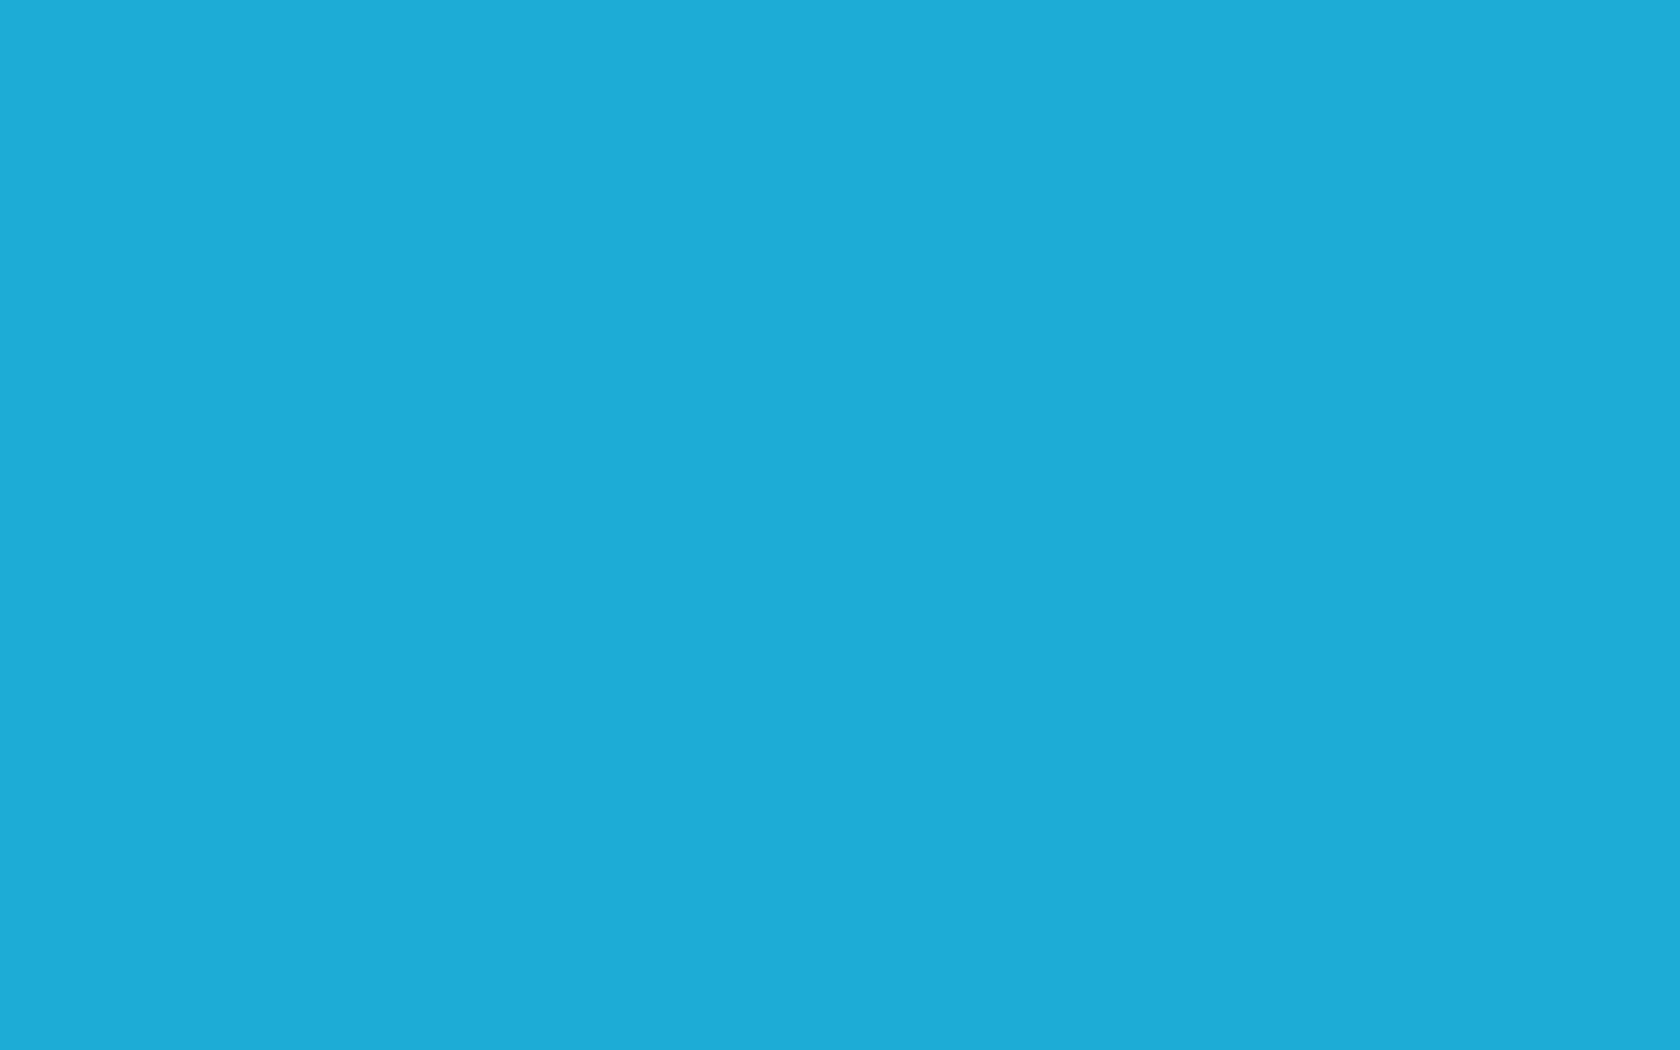 1680x1050 Bright Cerulean Solid Color Background